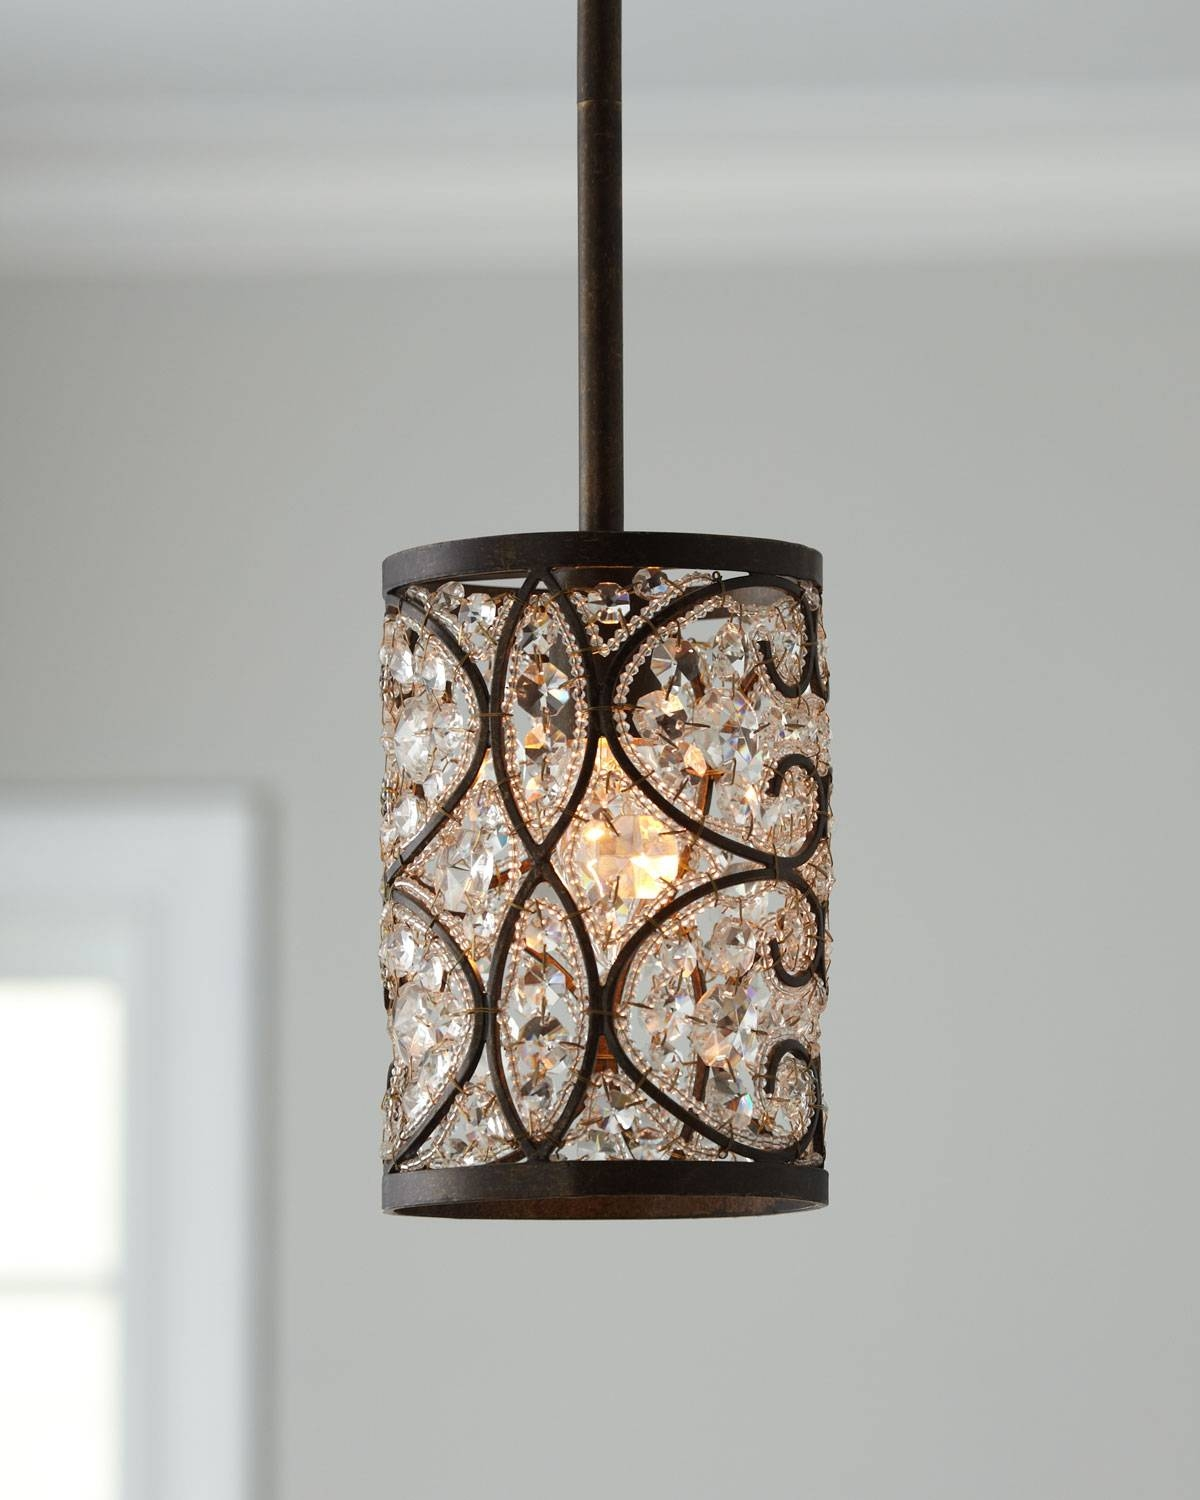 Crystal Pendant Lights - Hbwonong pertaining to Crystal Pendant Lights (Image 5 of 15)